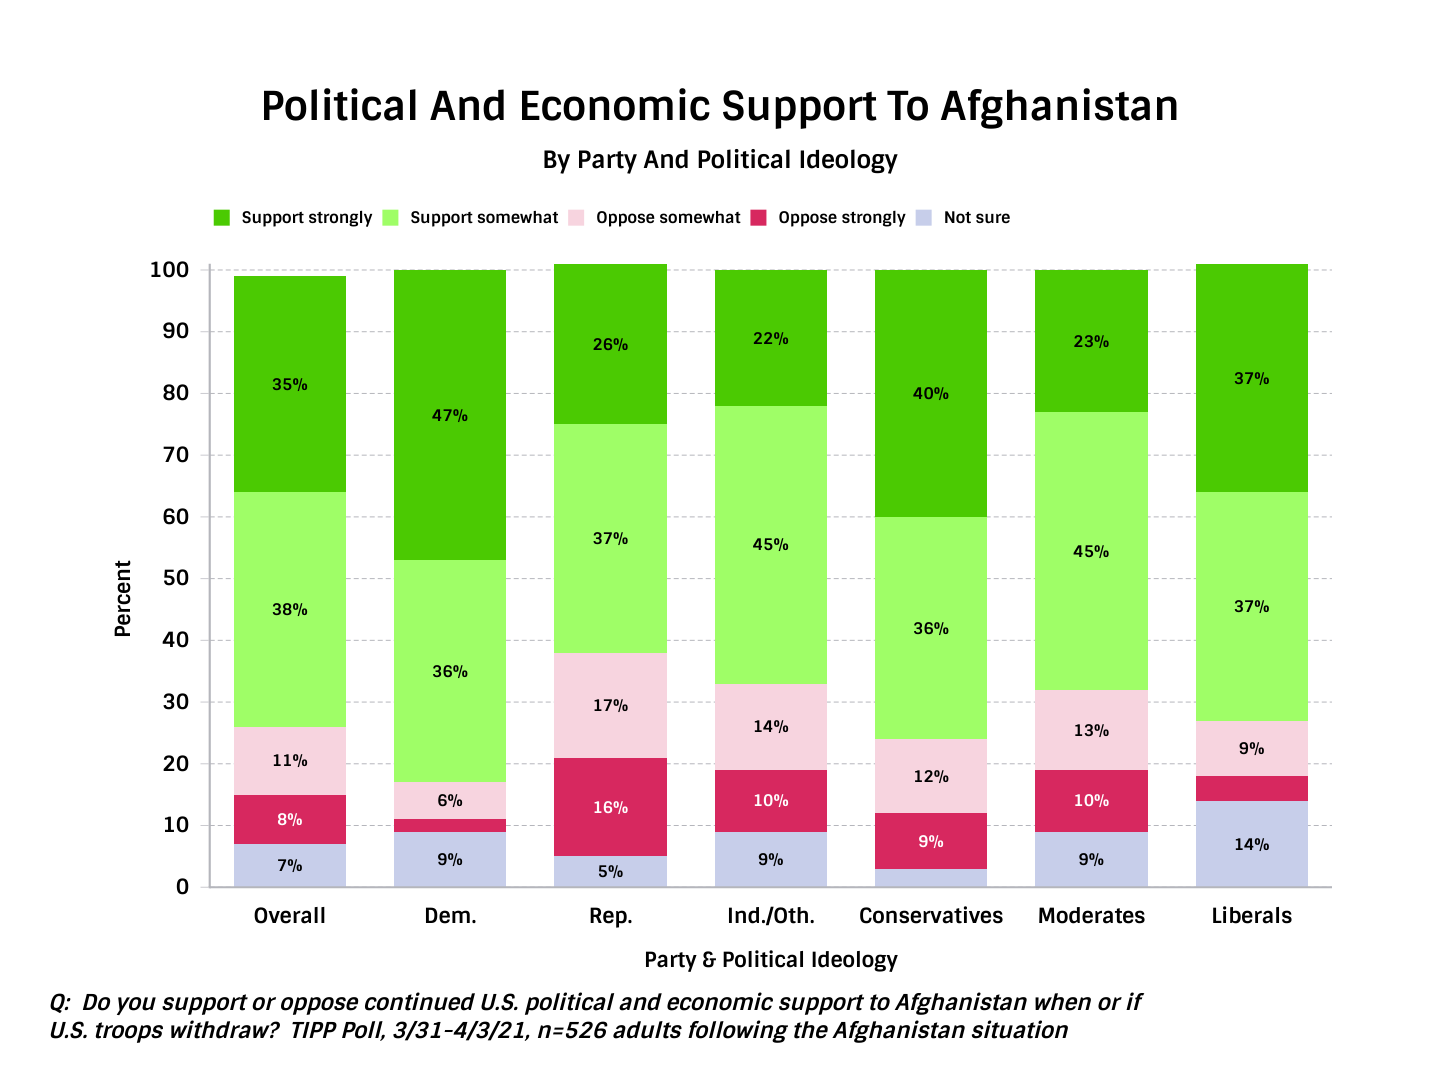 TIPP Poll Result, American Political and economic support to afghanistan along party and ideological lines.